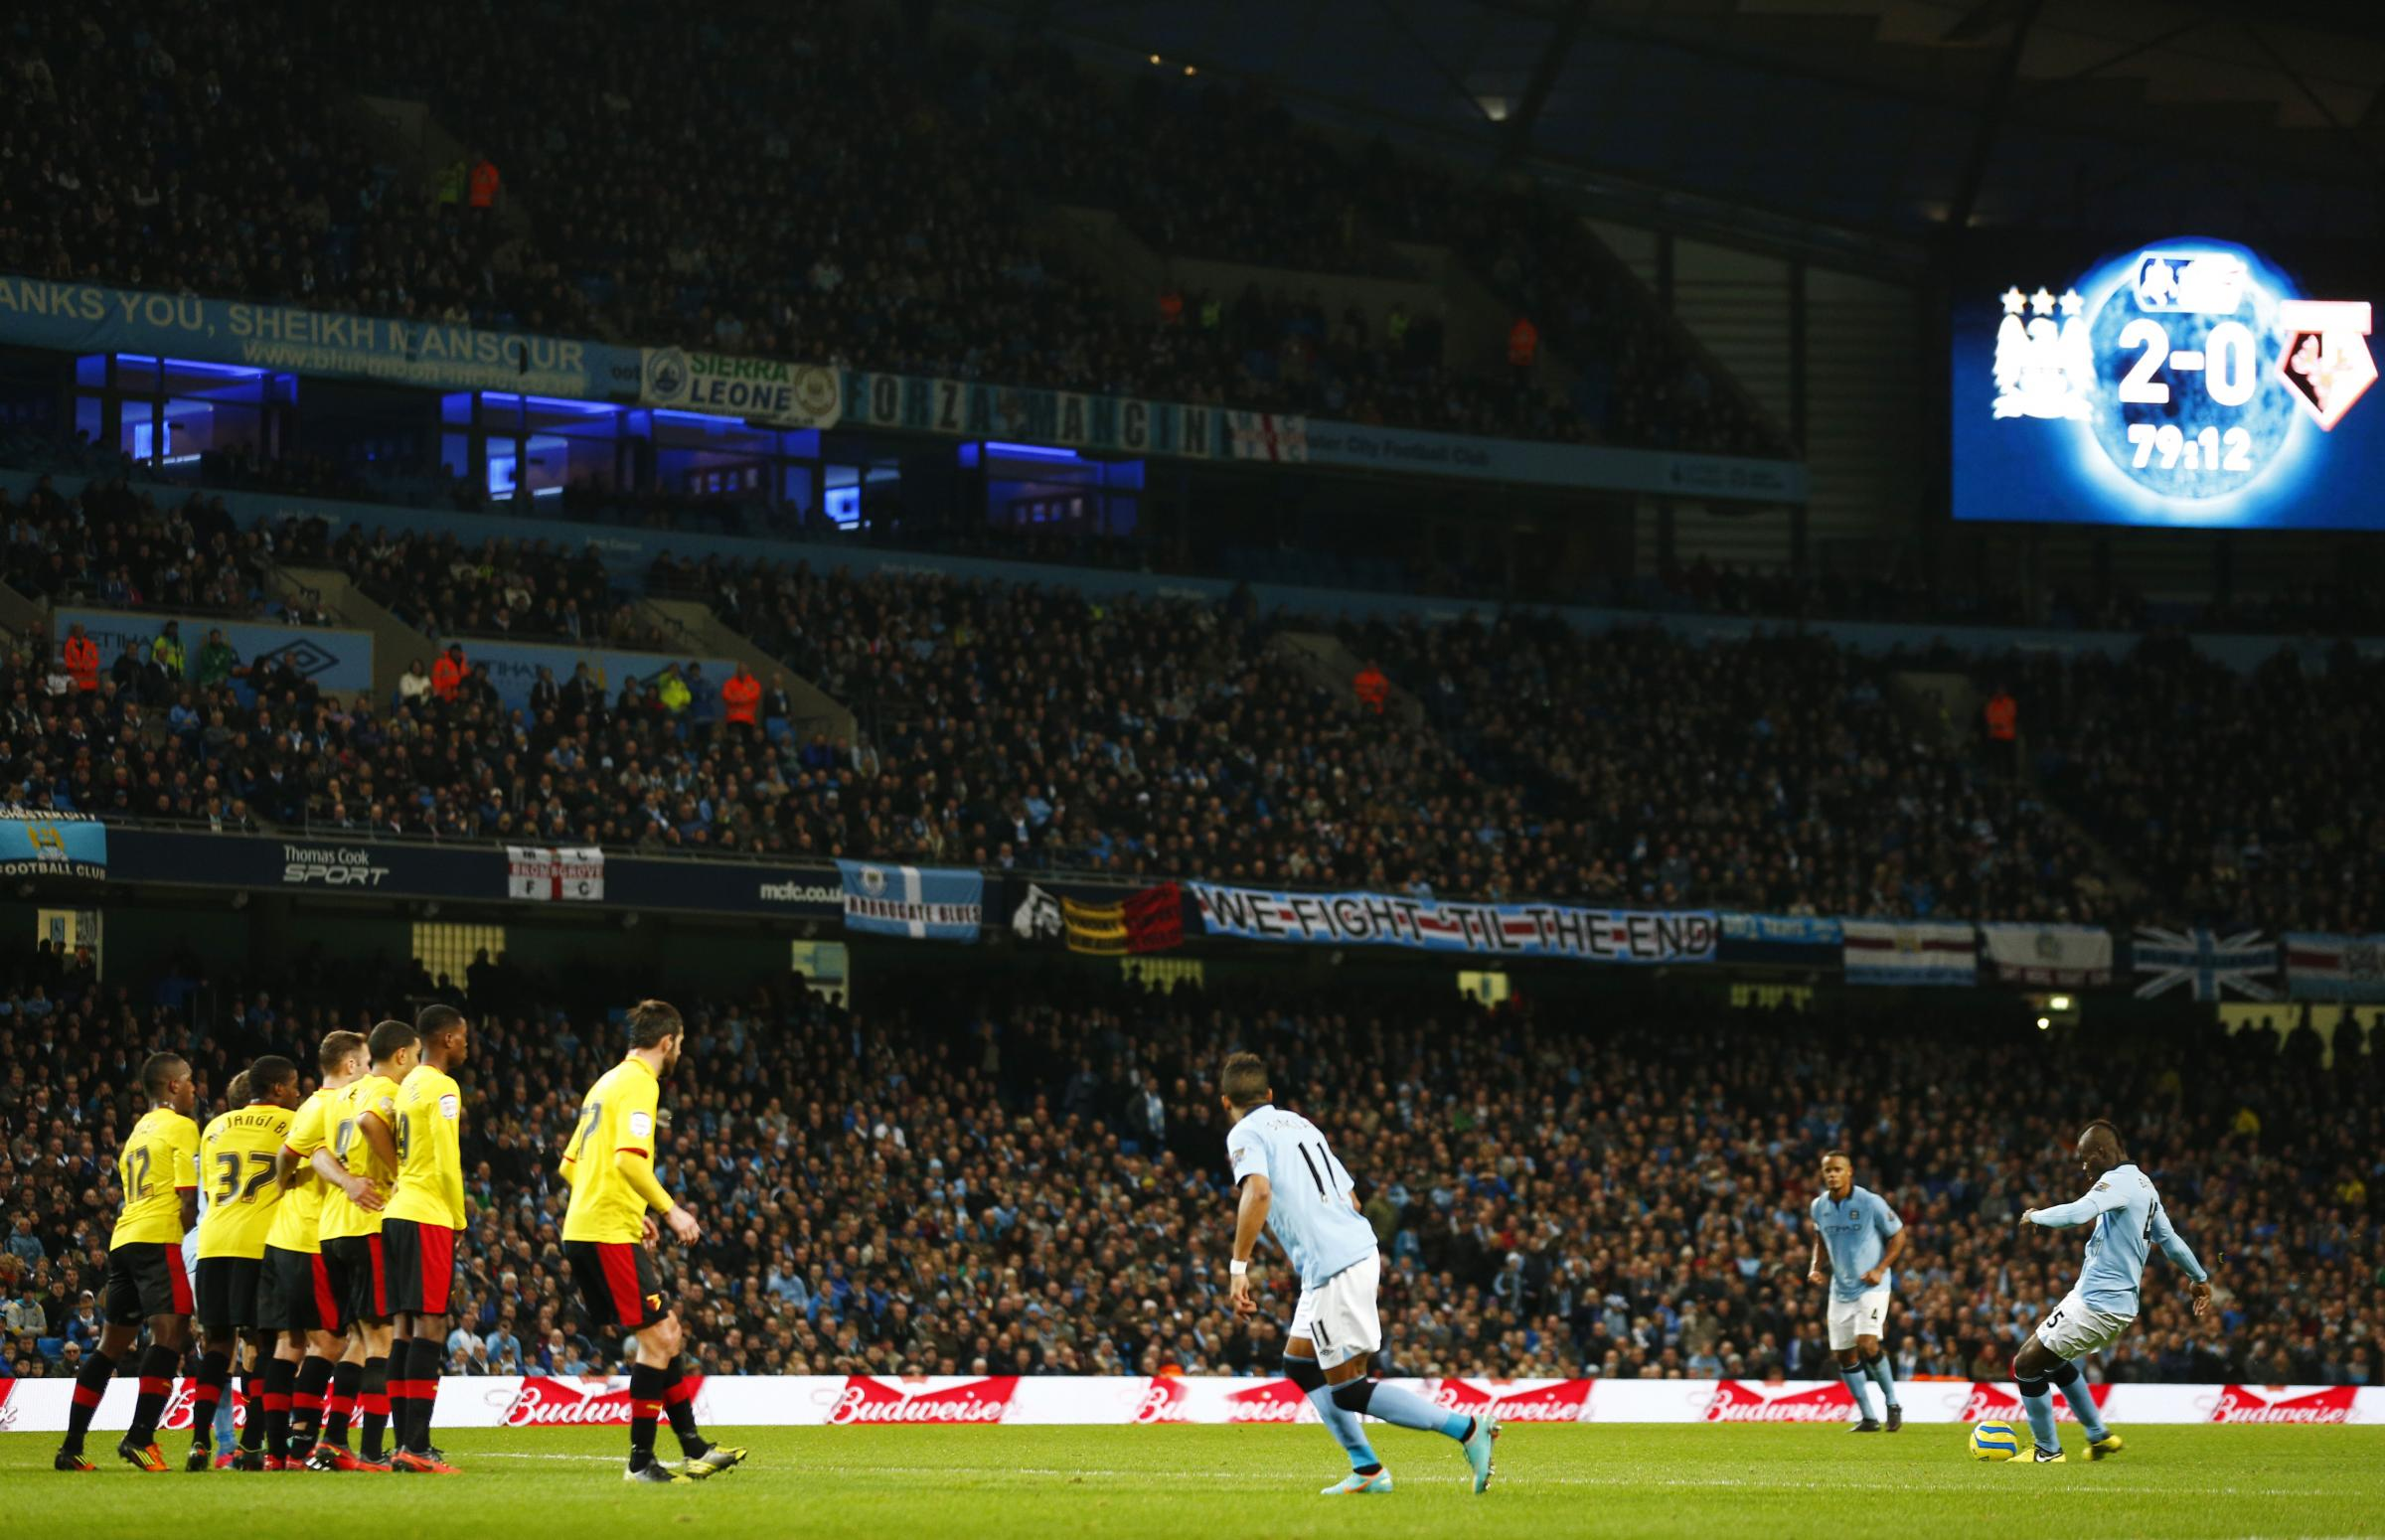 The Hornets were beaten 3-0 at the Etihad Stadium last season. Picture: Action Images